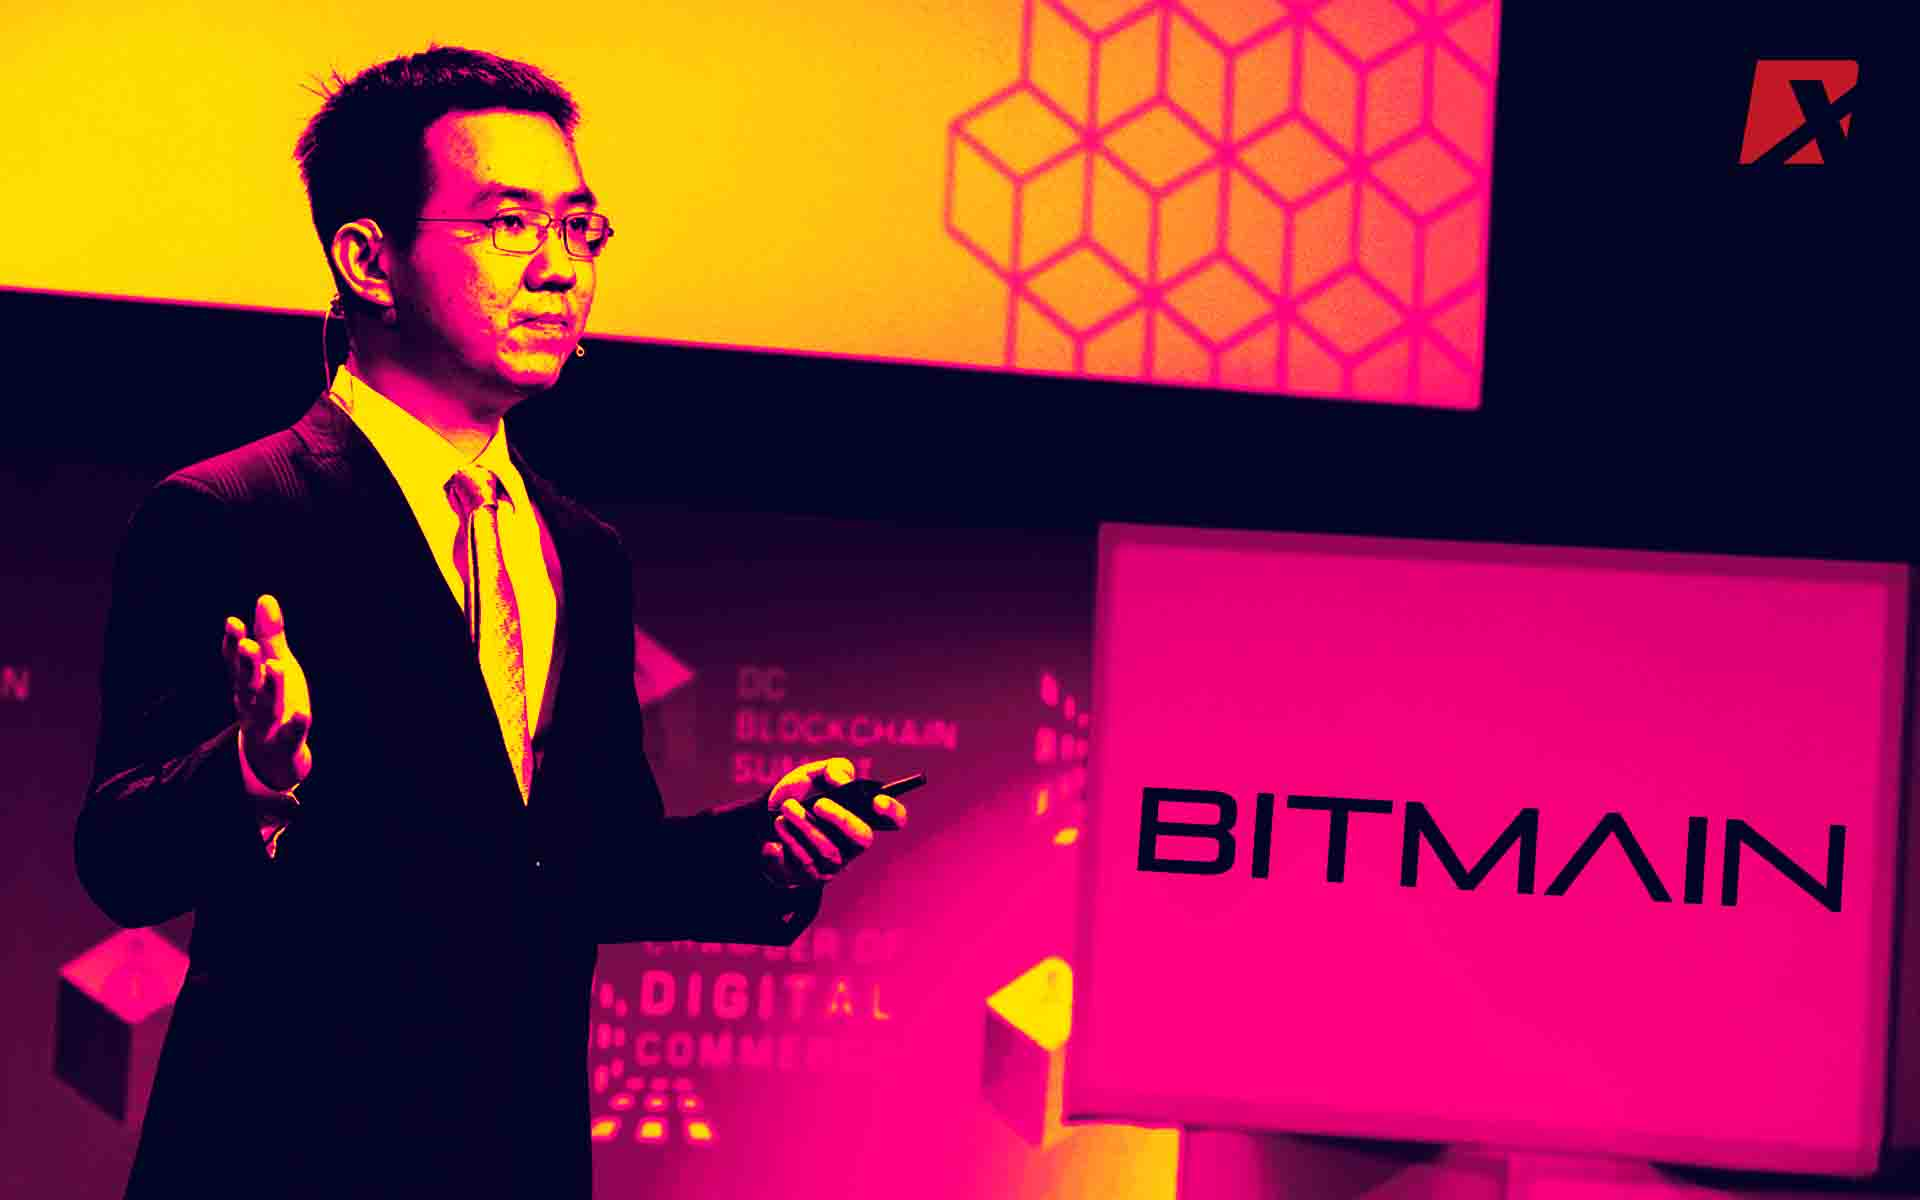 Need A New Mining Rig? Bitmain's Got You Covered